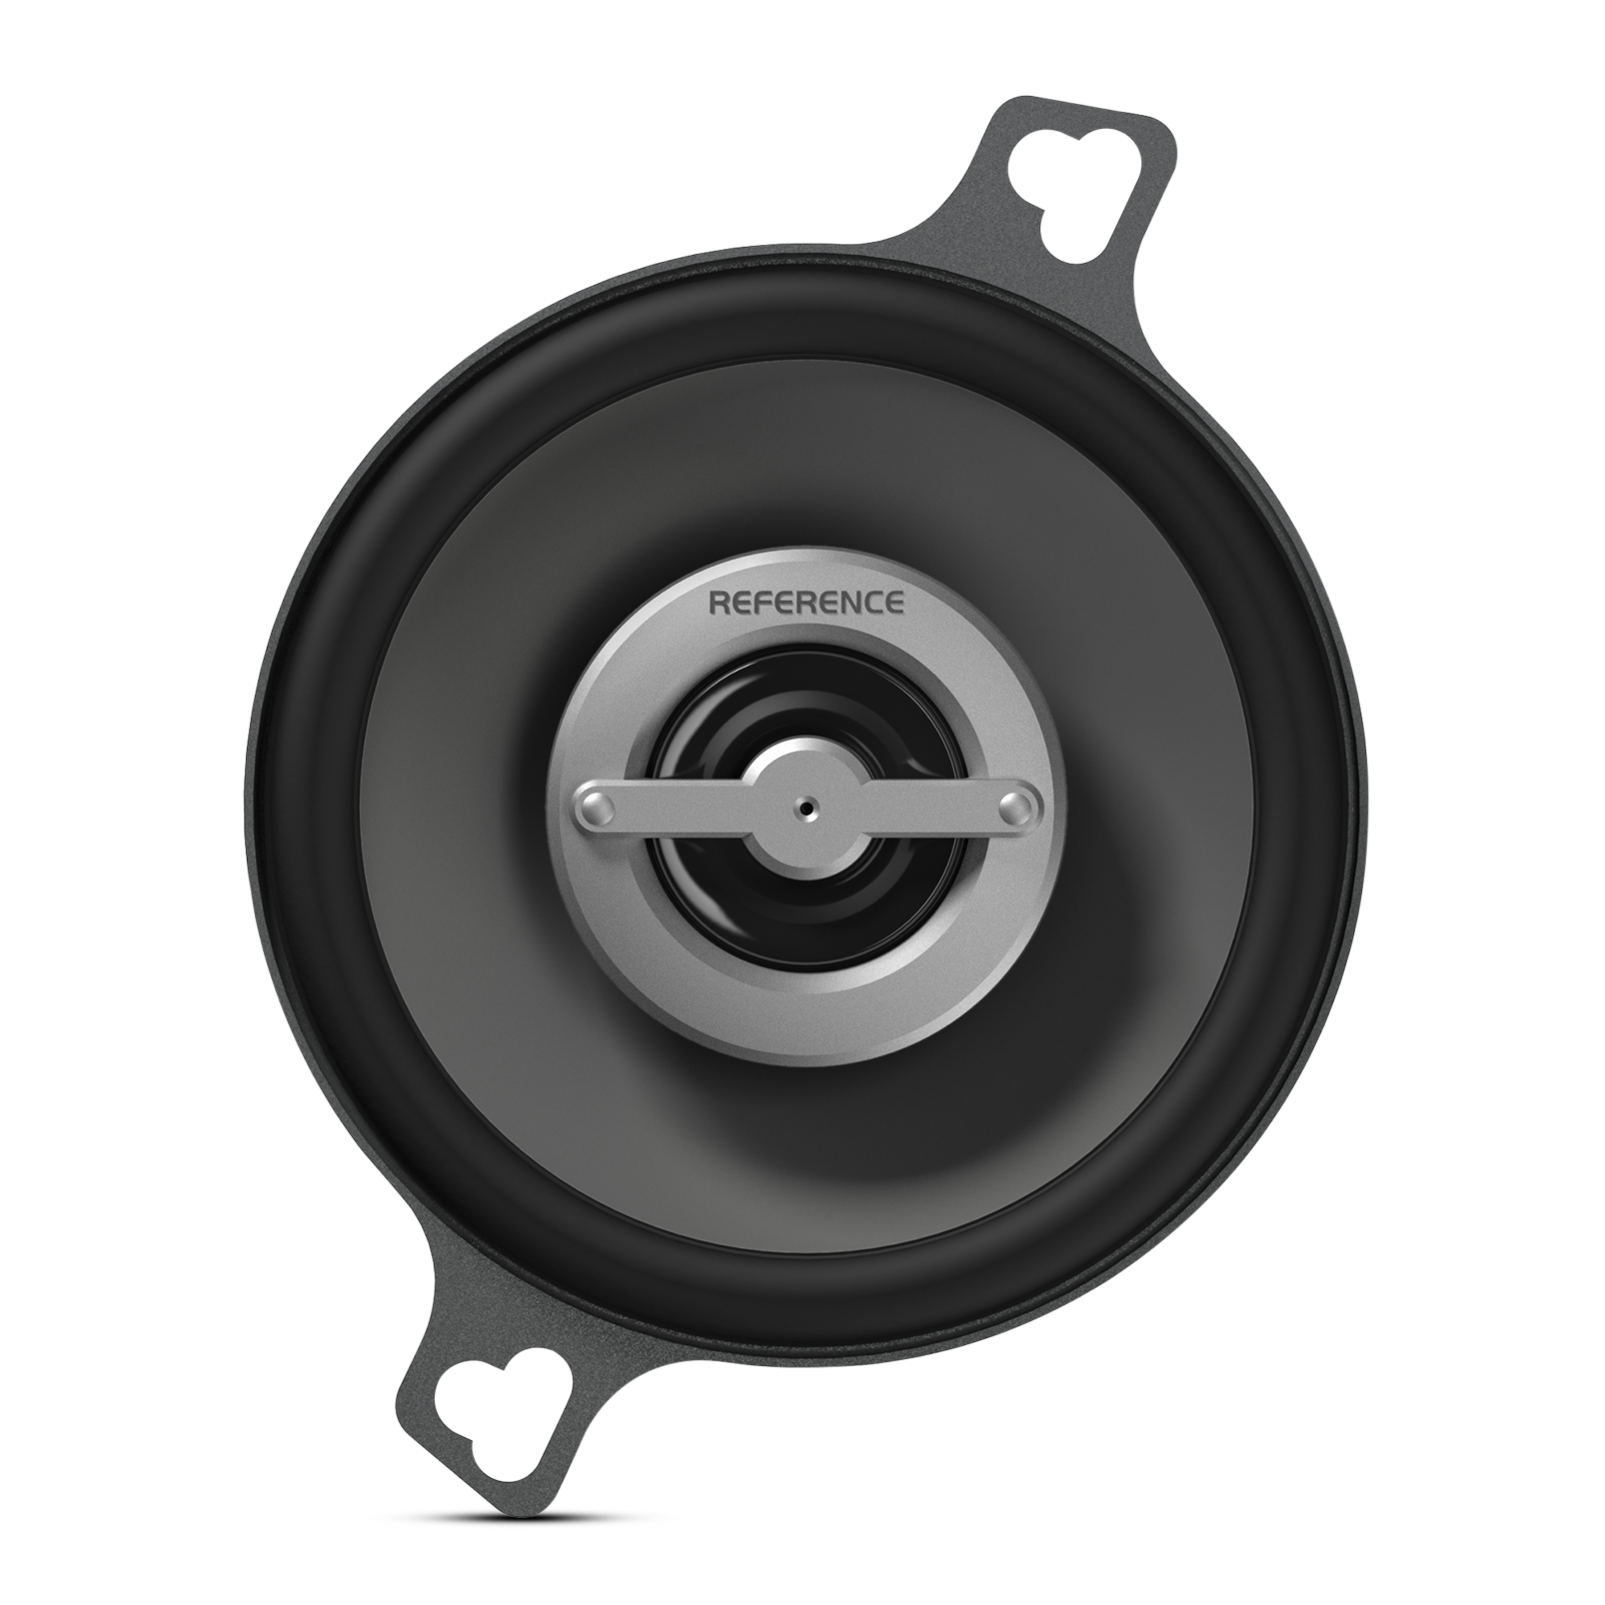 """Reference 3002cfx - Black - A 3-1/2"""" (87mm), custom-fit, two-way high-fidelity coaxial speaker with true 4-ohm technology - Front"""